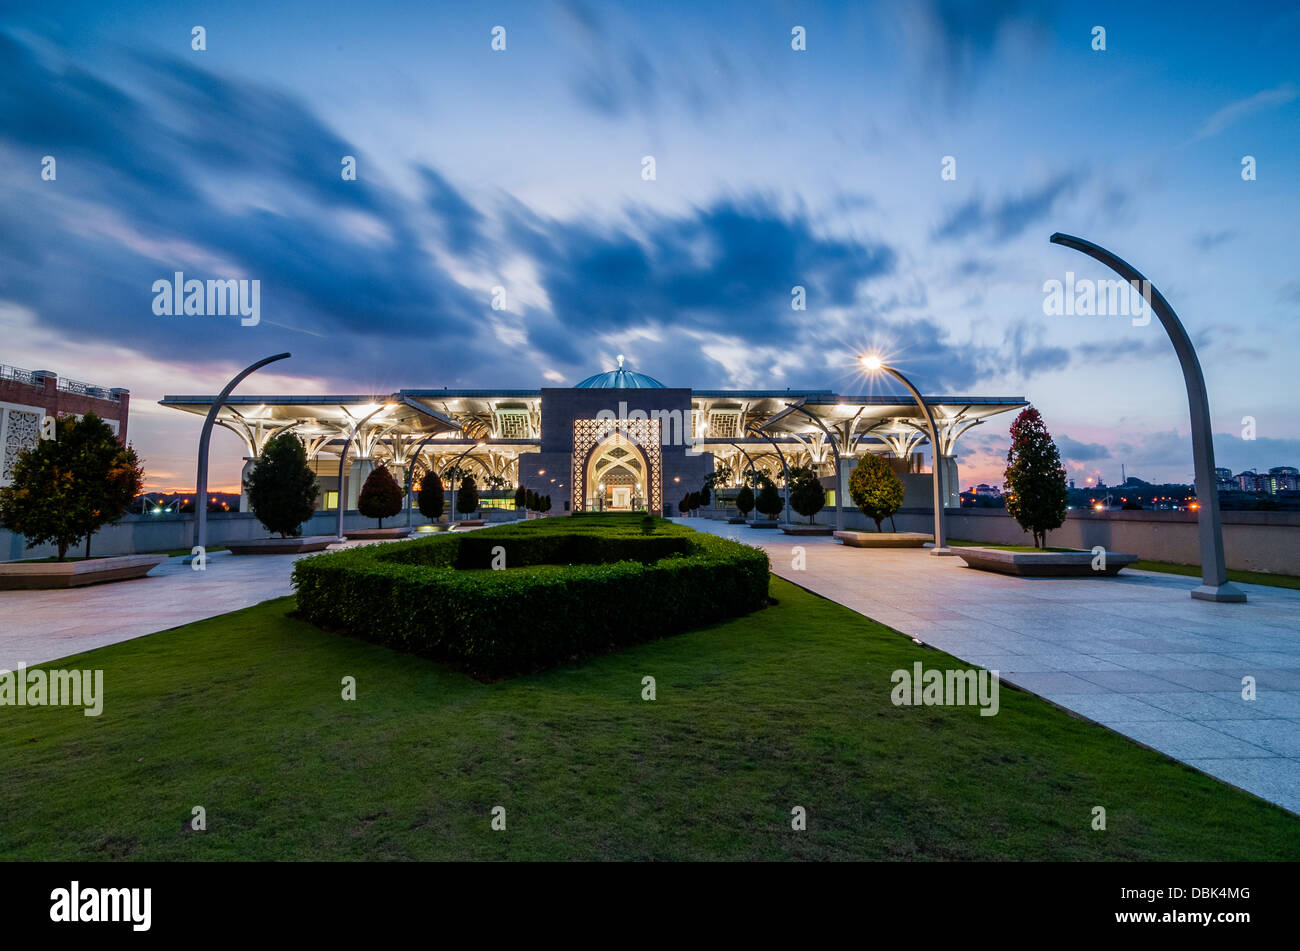 Blue cloud at steel mosque - Stock Image